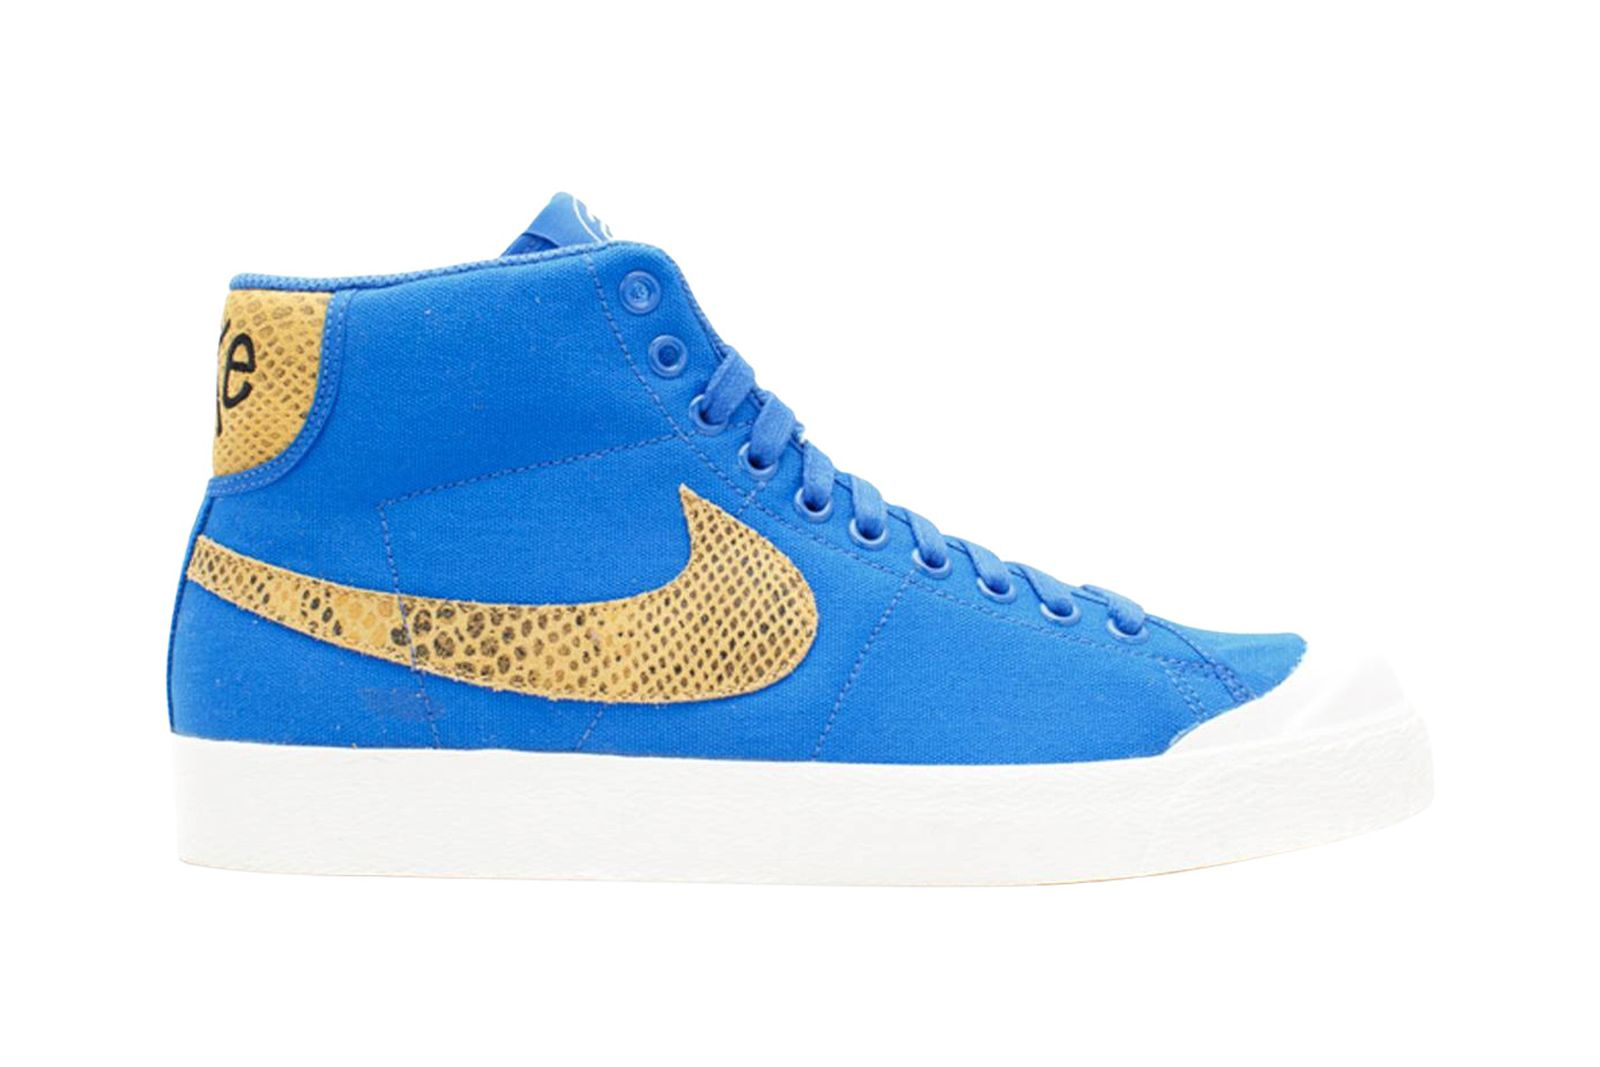 stussy-nike-sneaker-collaboration-roundup-17